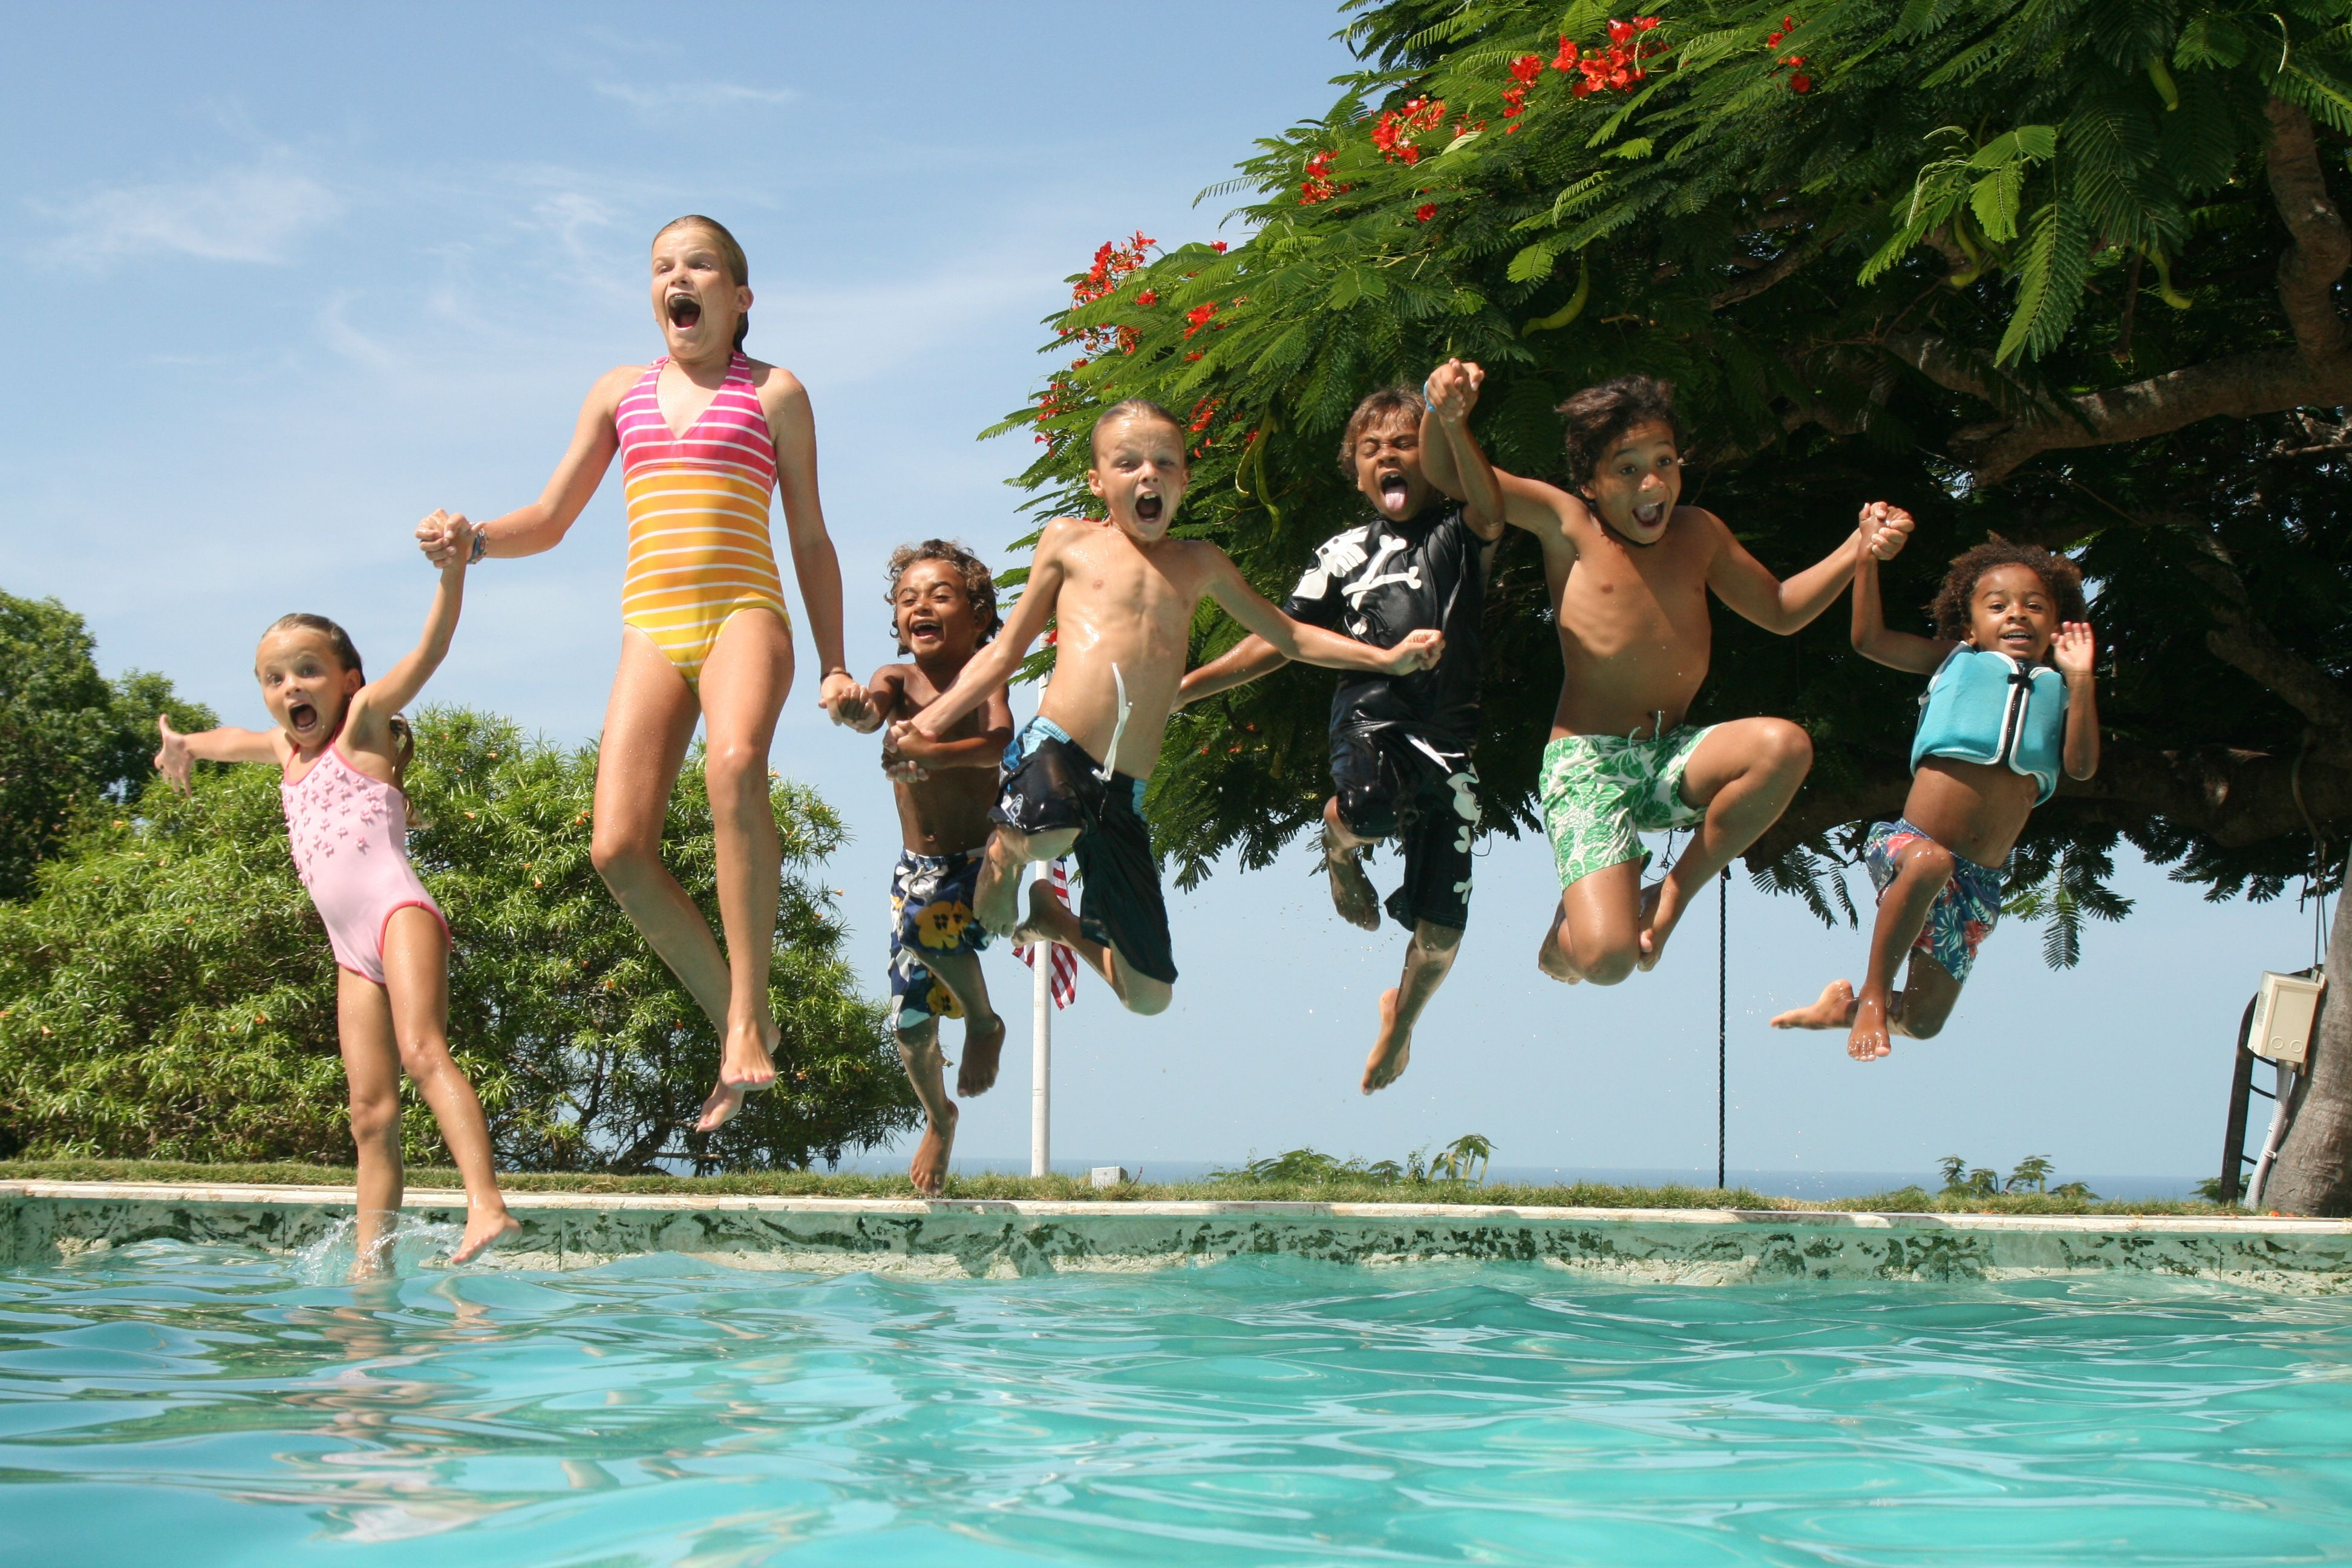 Eleuthera Bahamas is the perfect place for some family fun!